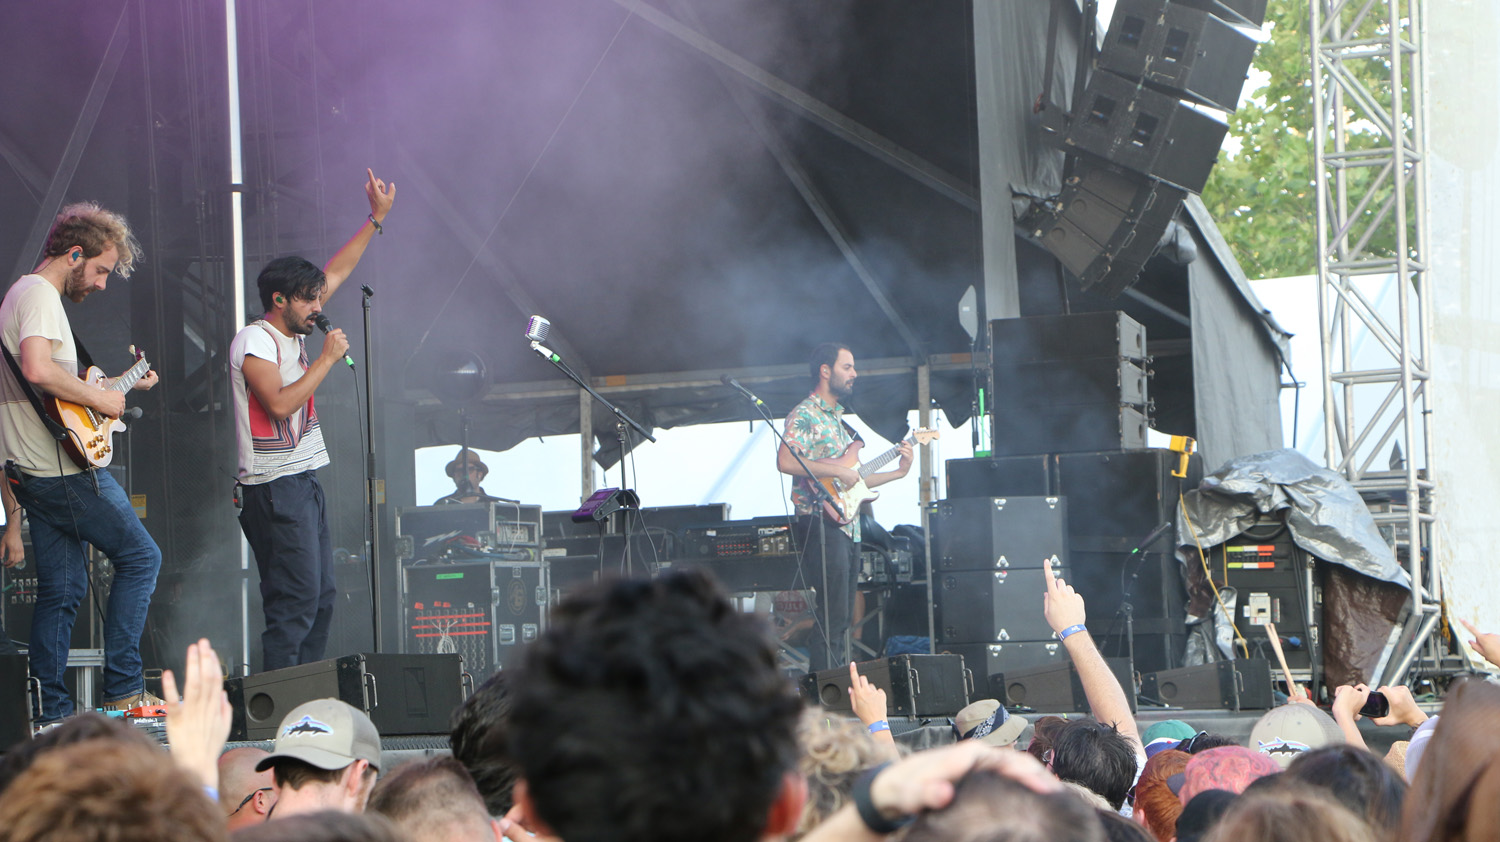 Jacob Tilley, left, Sameer Gadhia, center, and Eric Cannata, right, of Young the Giant perform at the Sloss Music & Arts Festival in Birmingham, Ala., on Saturday, July 18, 2015. (MTSU Sidelines / John Connor Coulston)